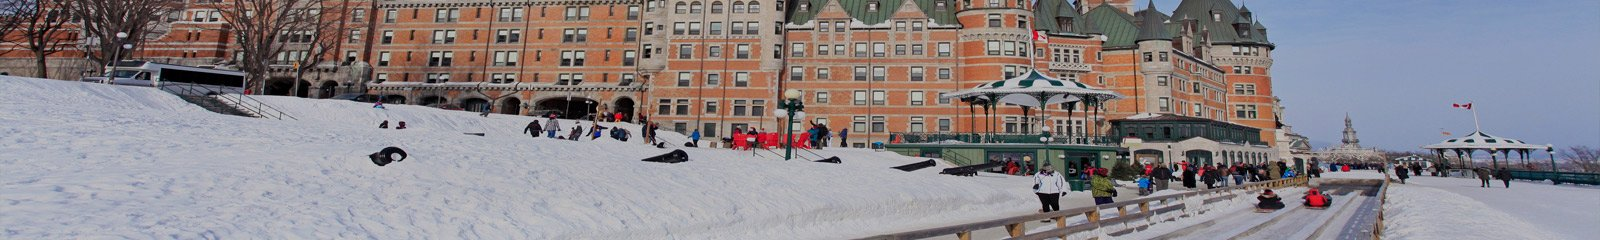 Do you live in Canada? Think you will be bored this winter? Worry not, here is a list of fun snow filled activities you can do.